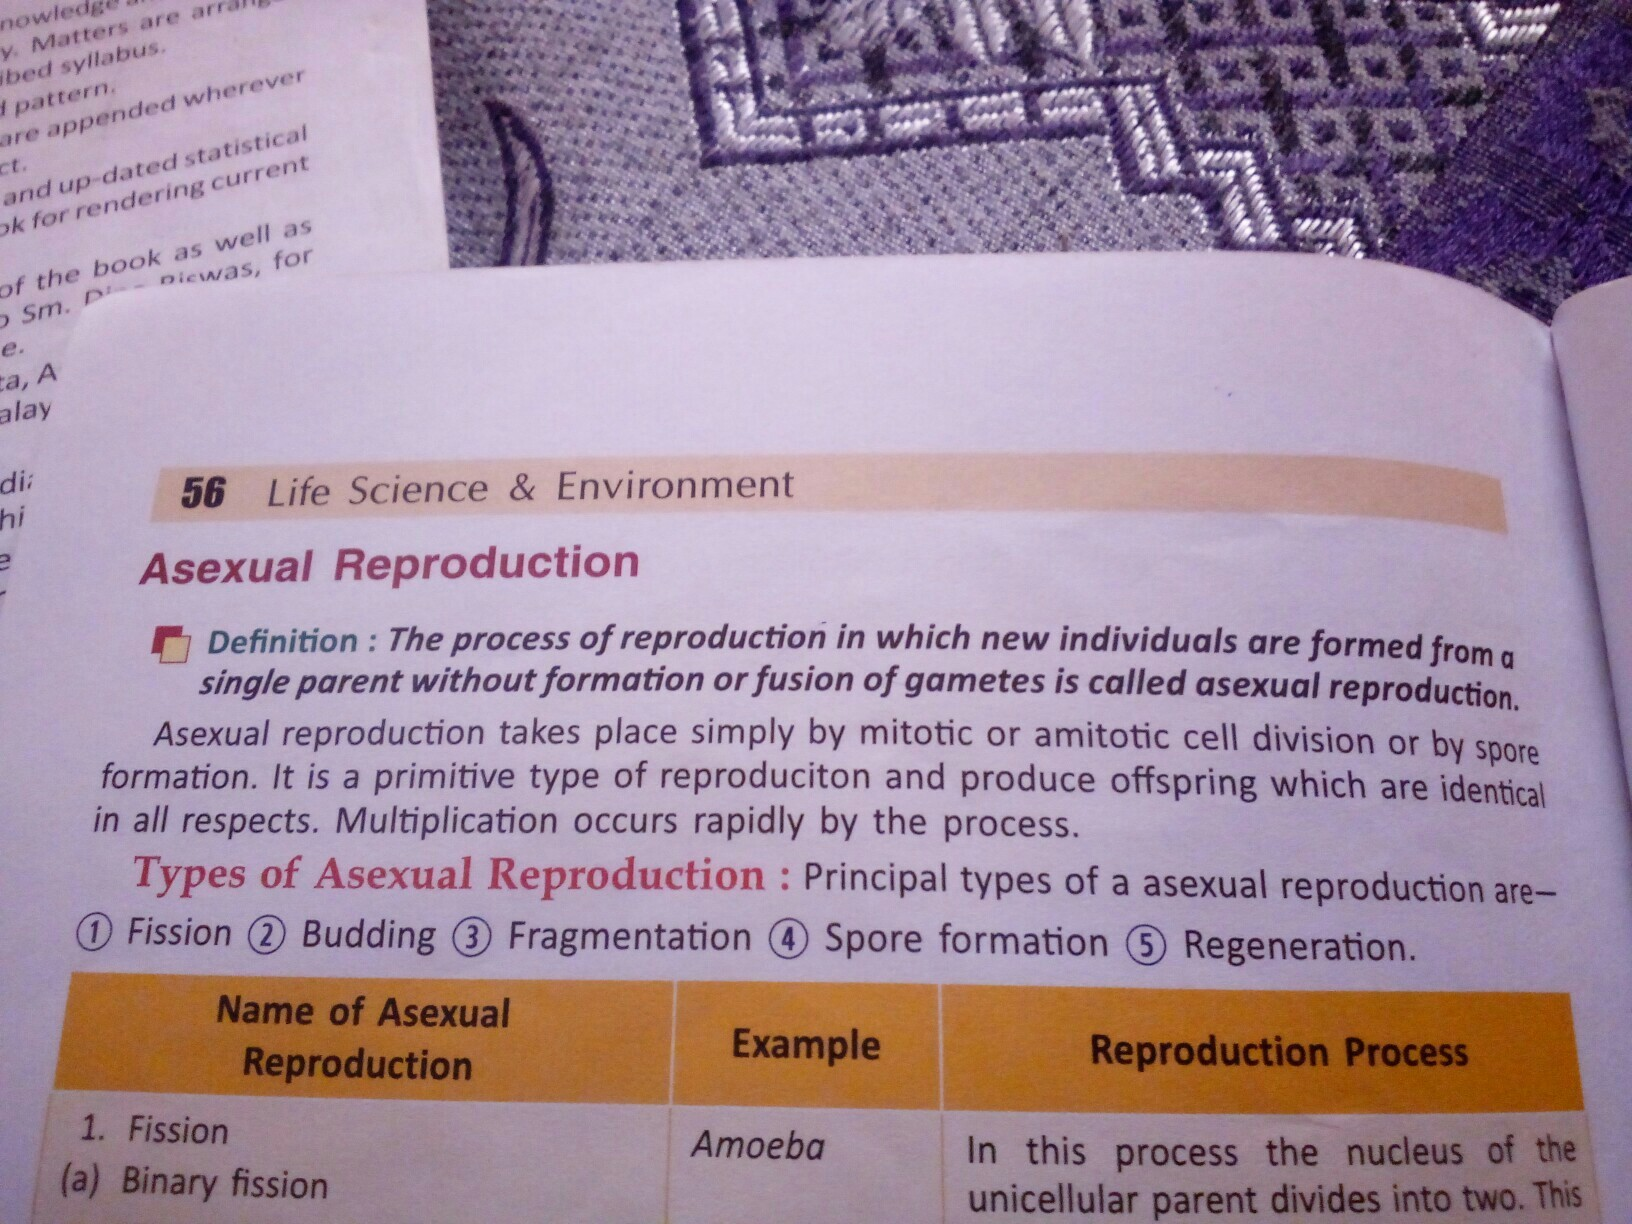 Have reproduction reproduction sexual asexual and for explanation. All